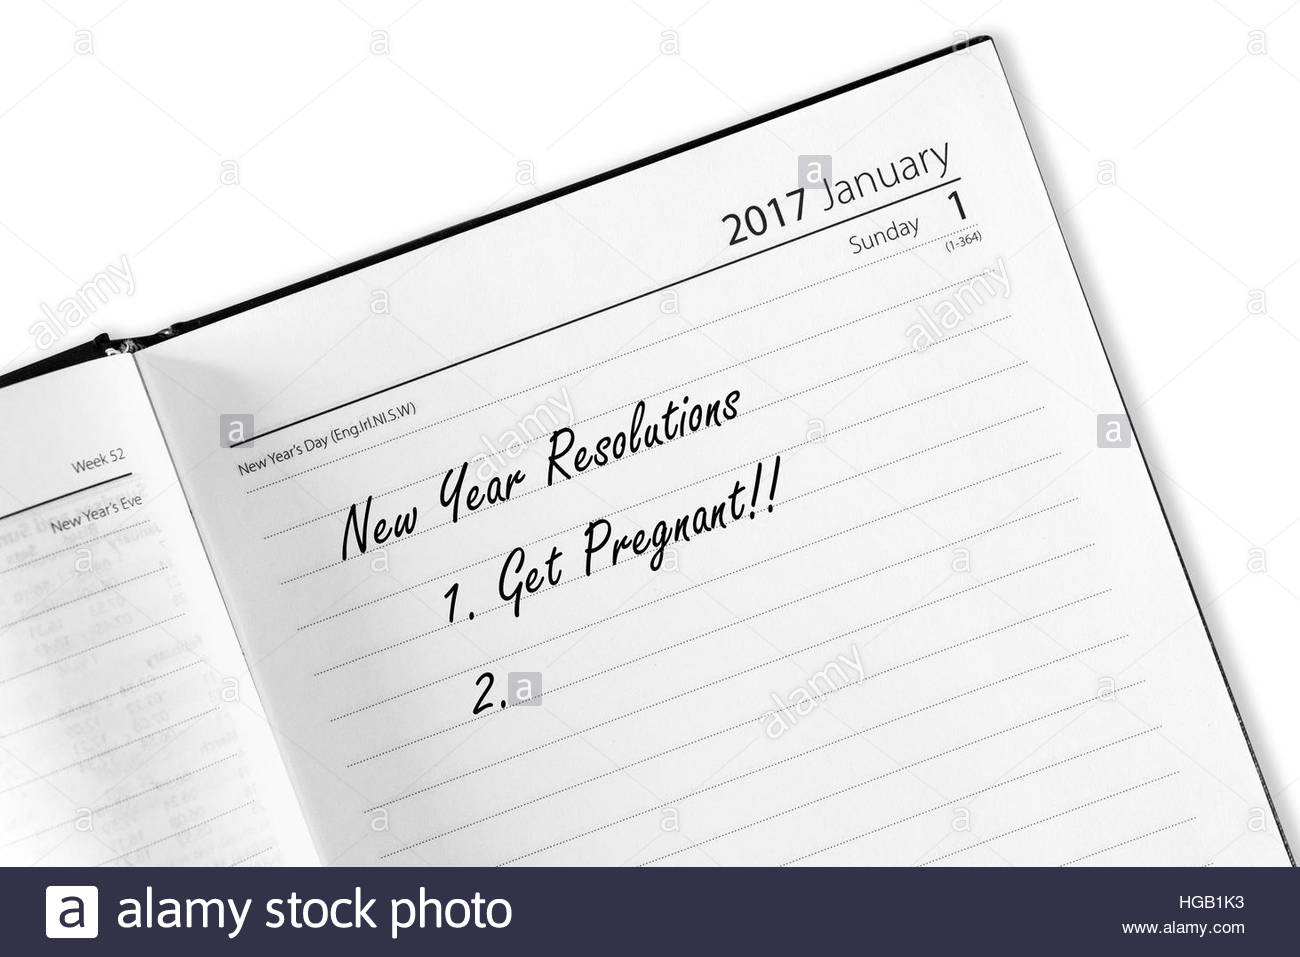 Get pregnant, New Year Resolutions - Stock Image